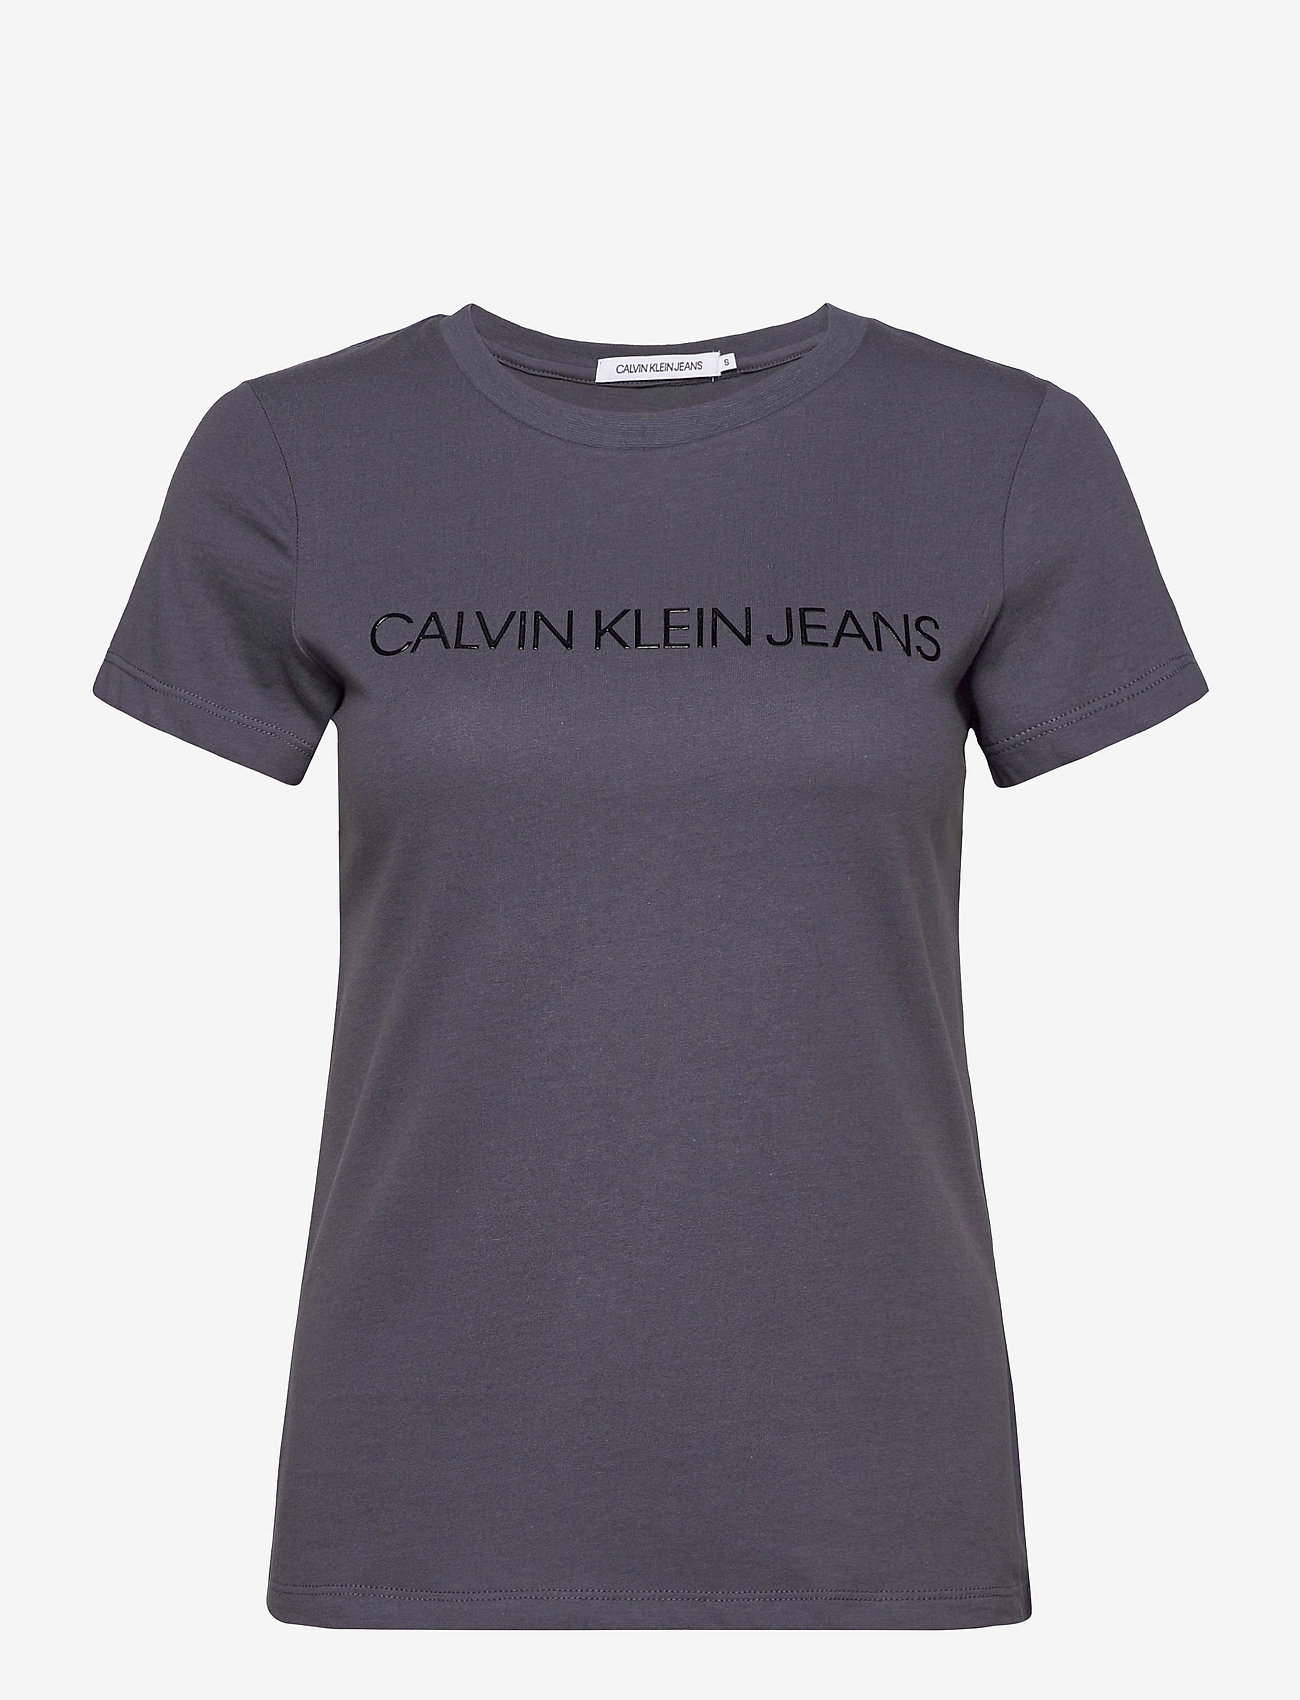 Calvin Klein Jeans - INSTITUTIONAL LOGO SLIM FIT TEE - t-shirts - abstract grey - 0